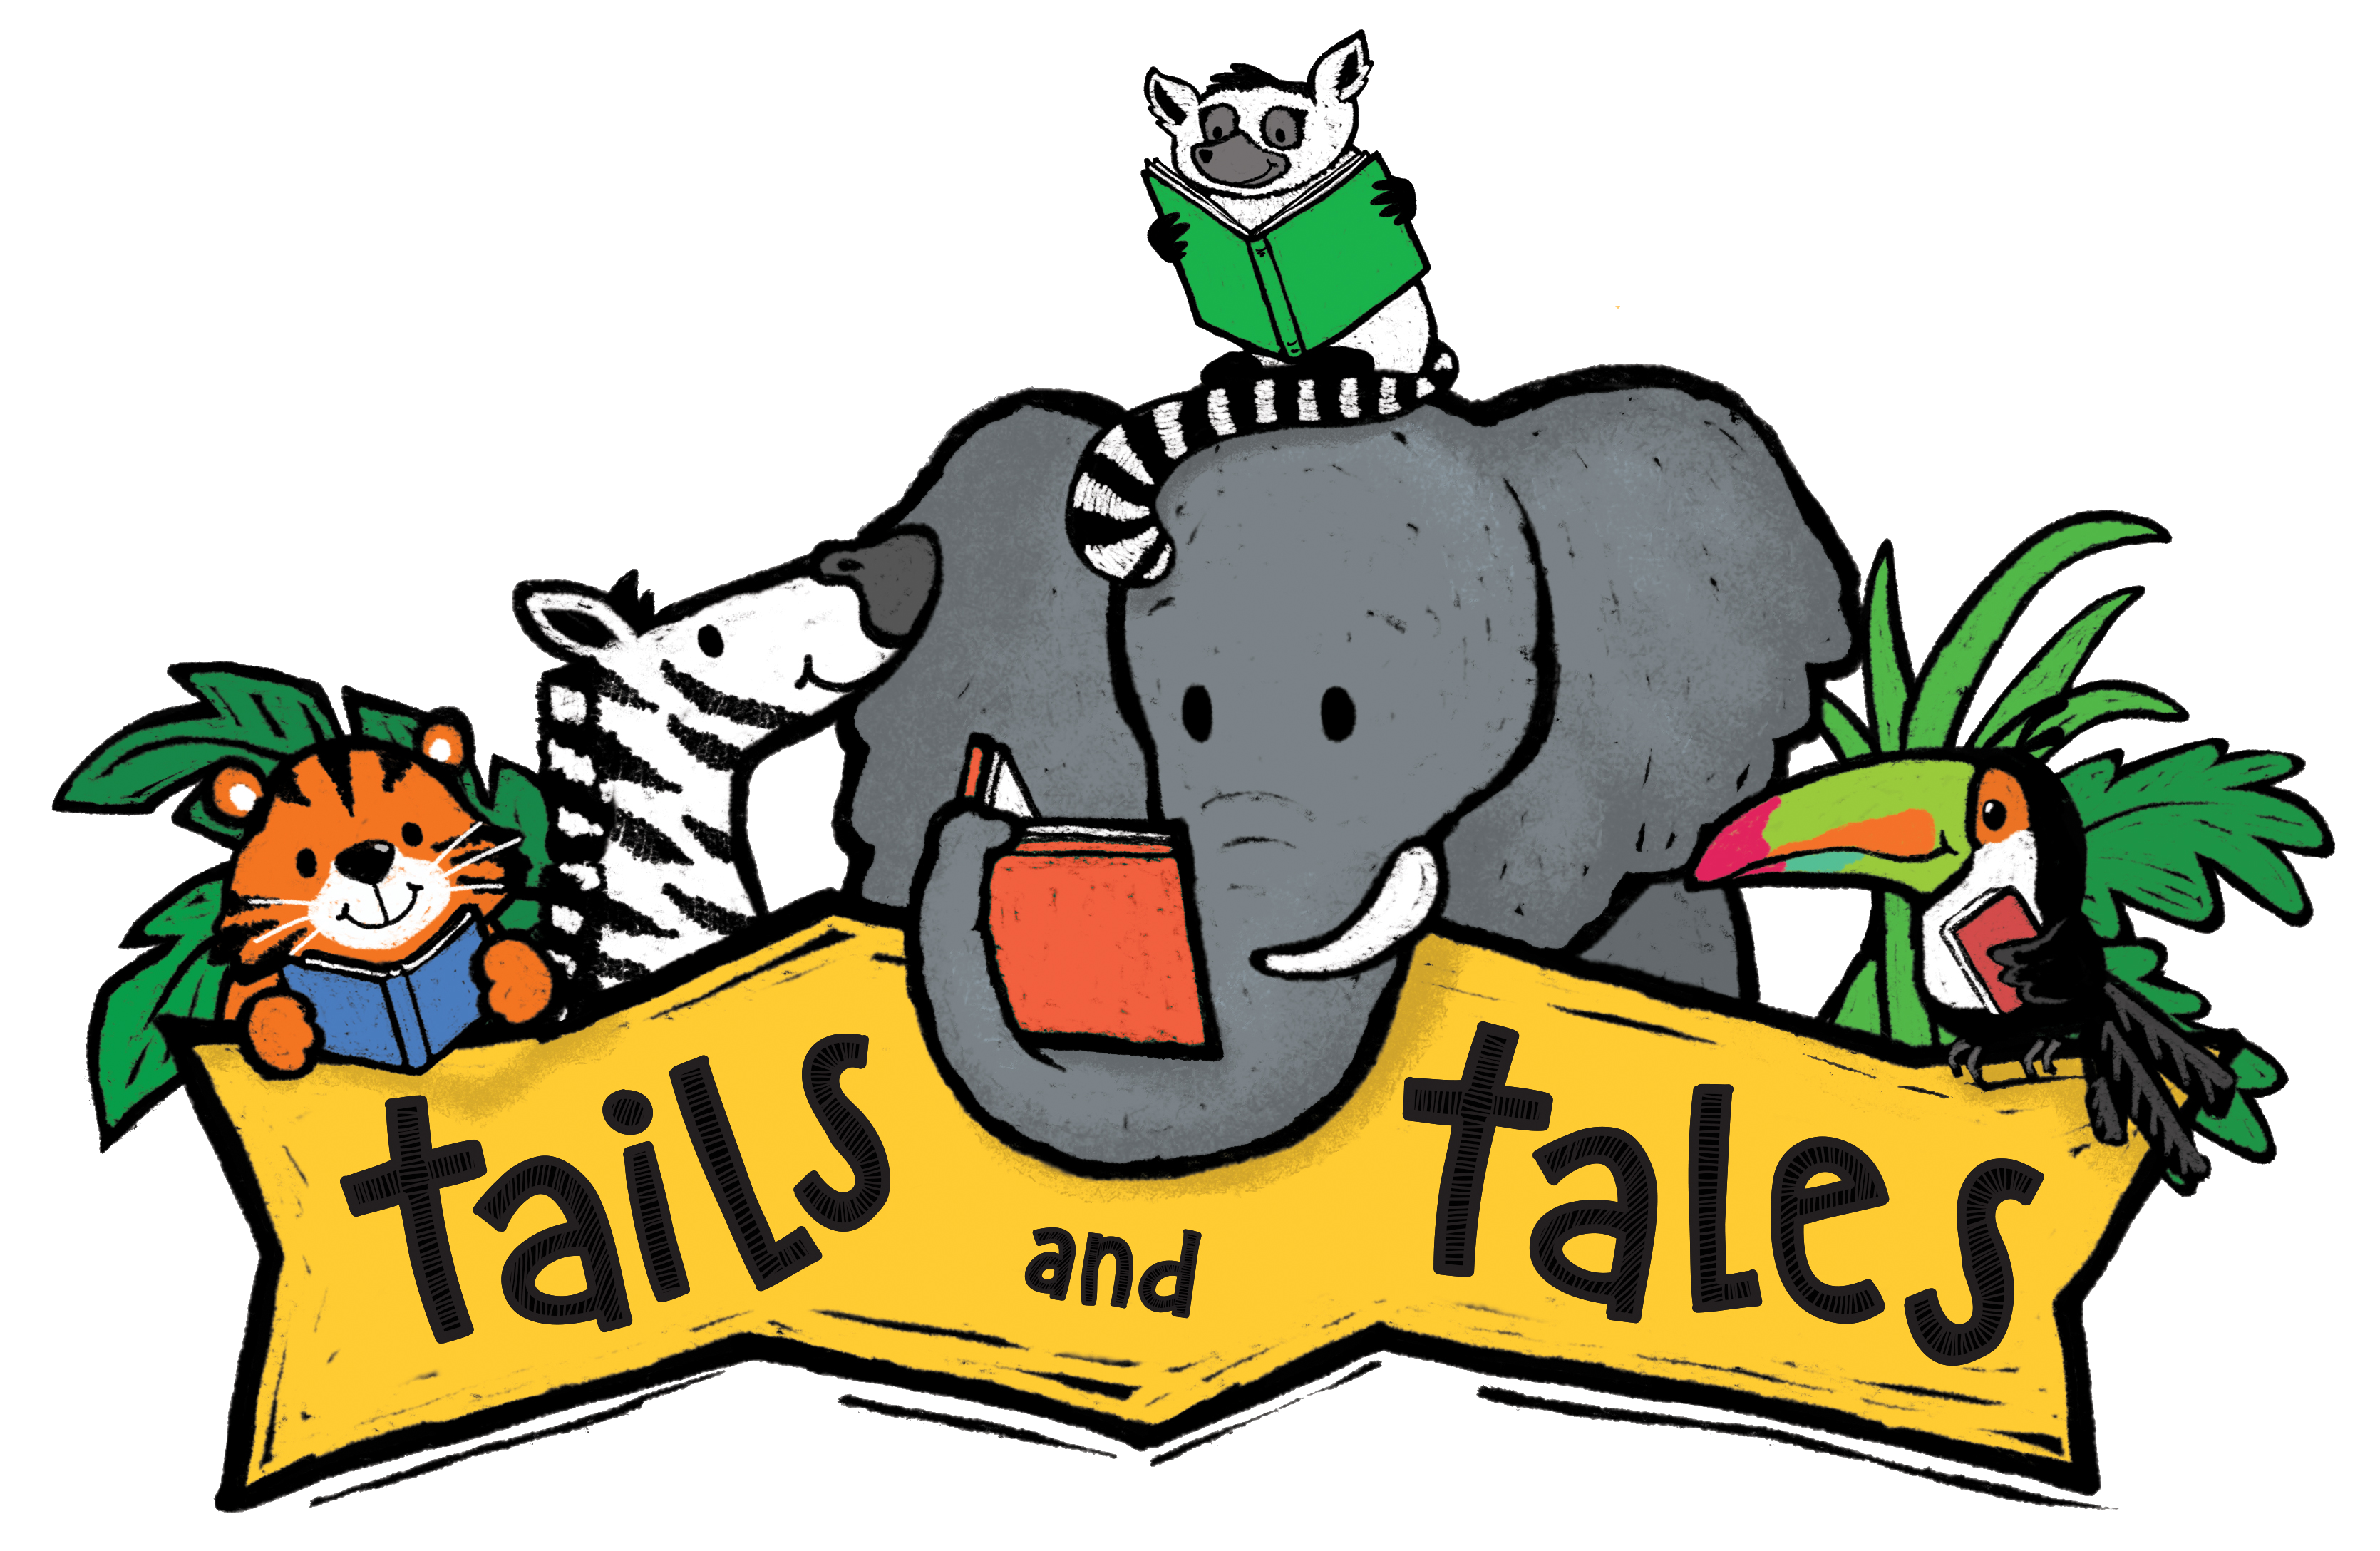 Tails and Tales animals and banner